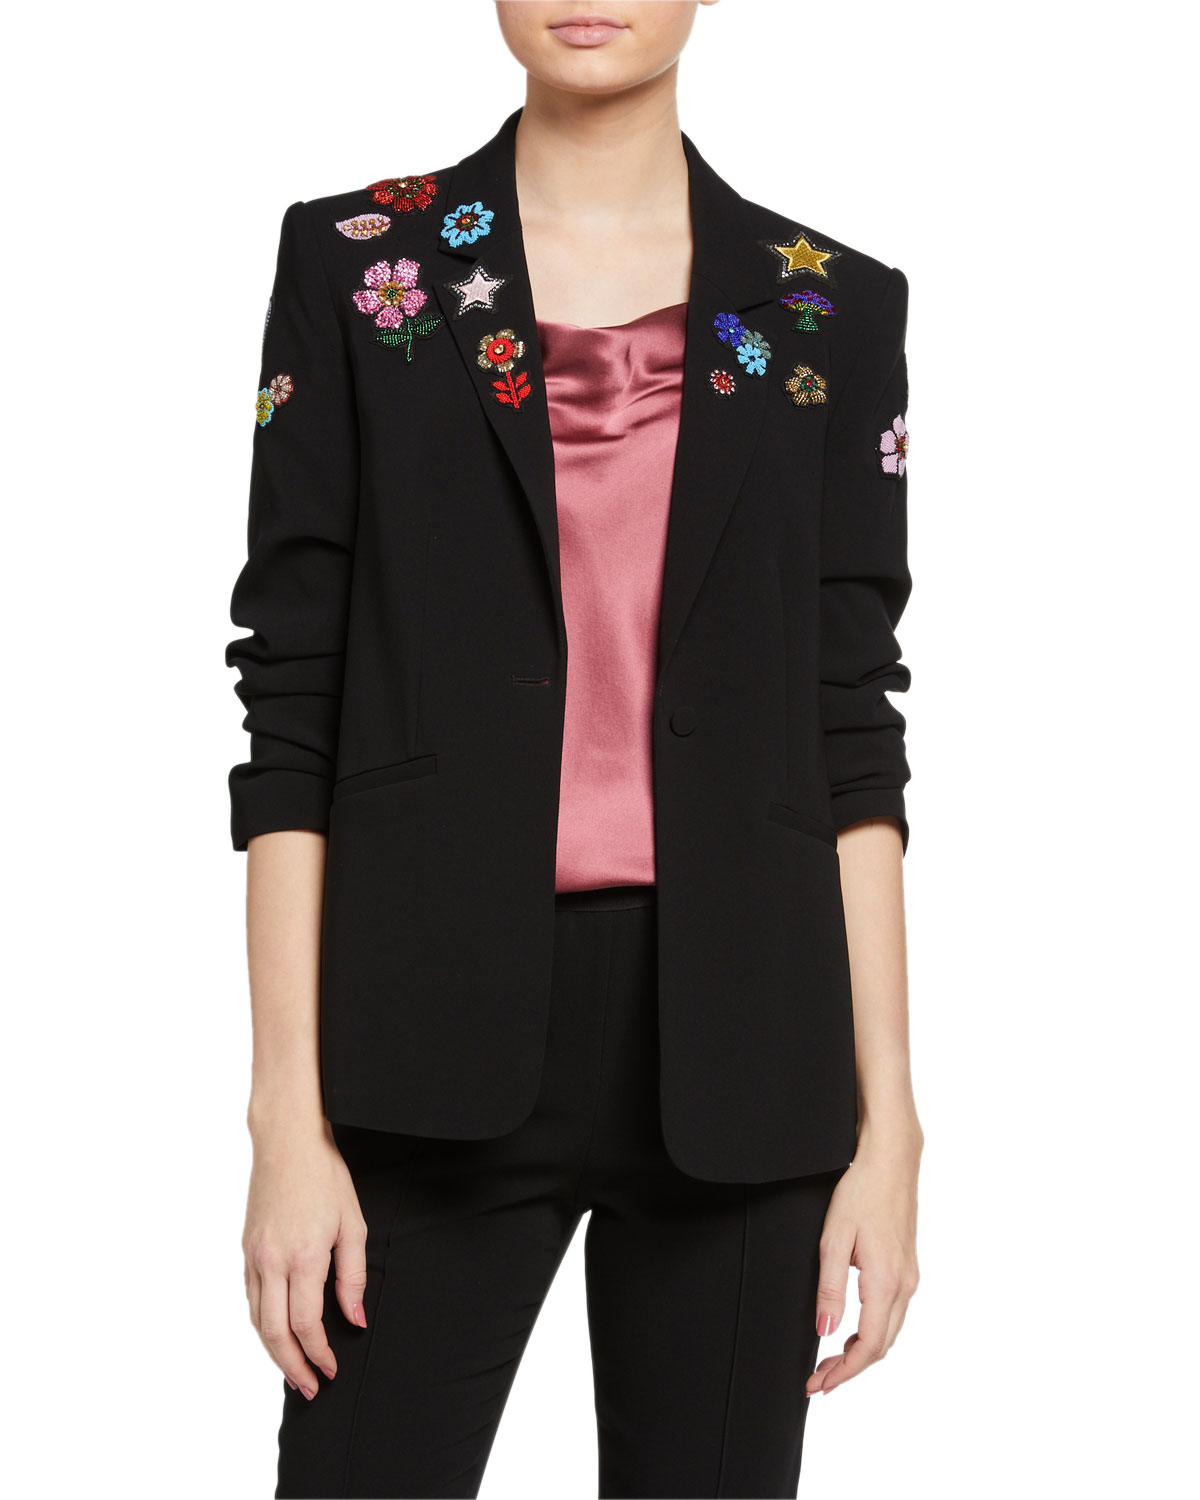 Cinq À Sept Linings KYLIE FLOWER POWER EMBROIDERED JACKET